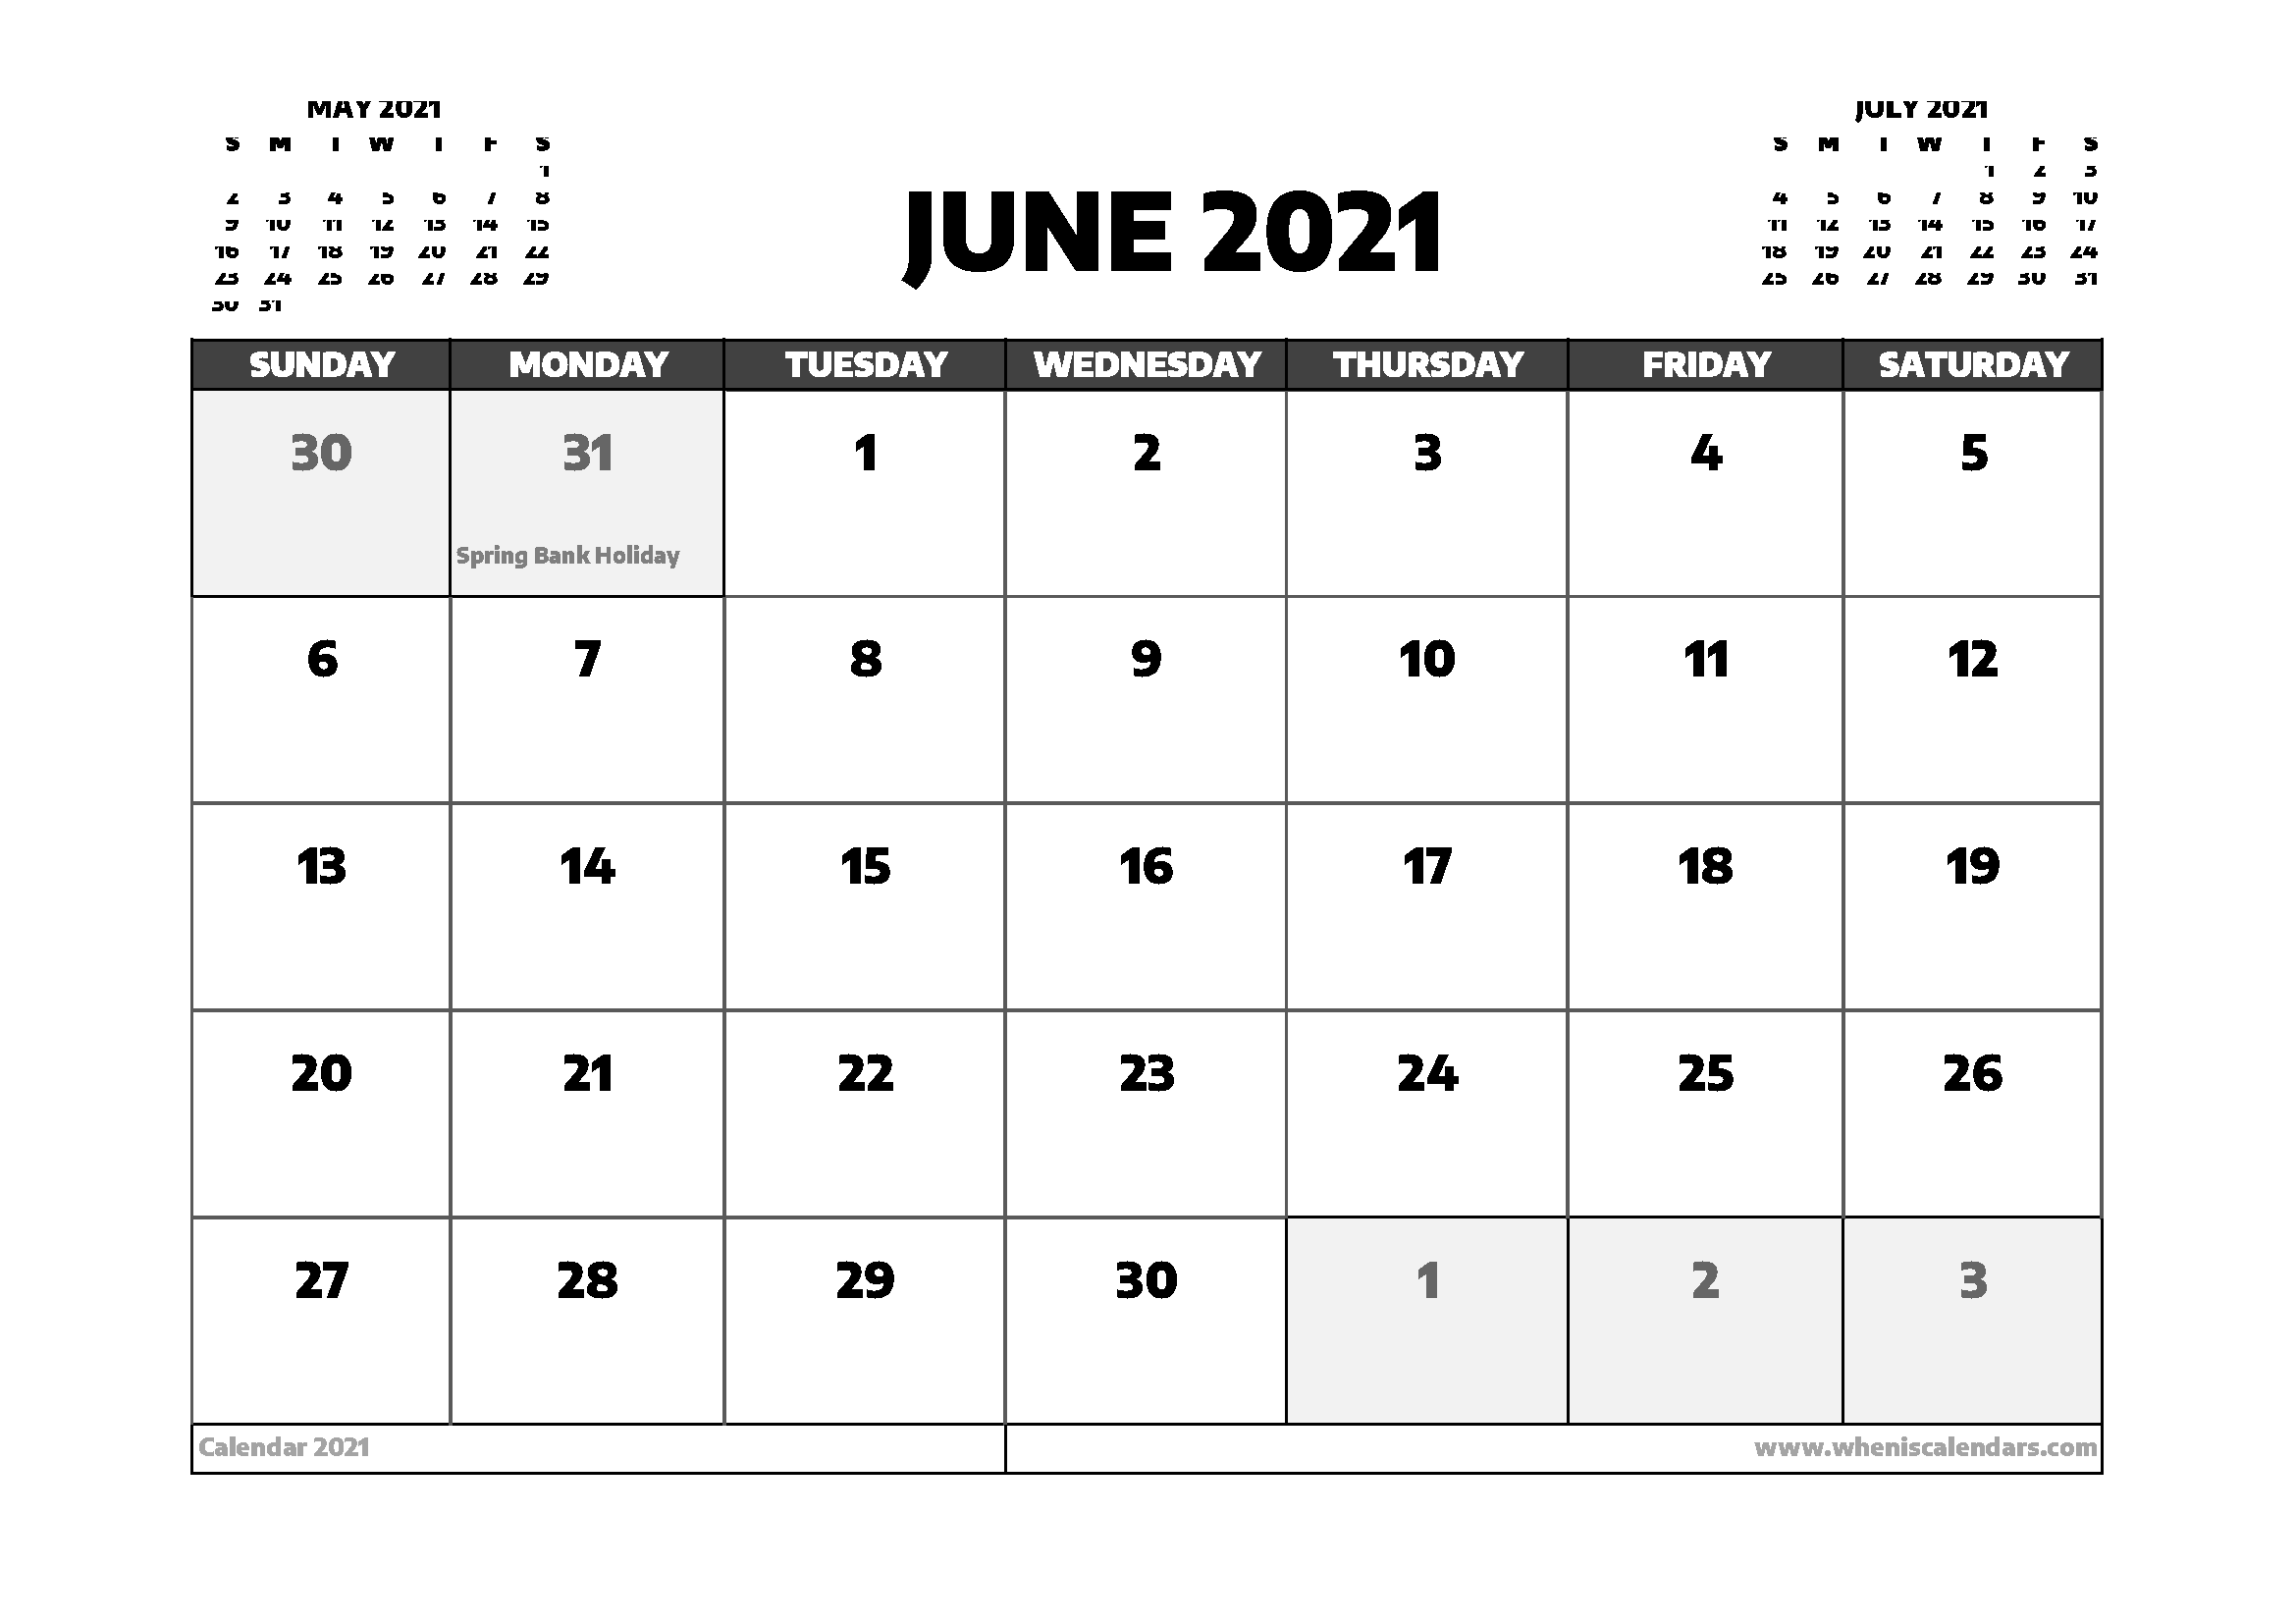 June 2021 Calendar UK with Holidays